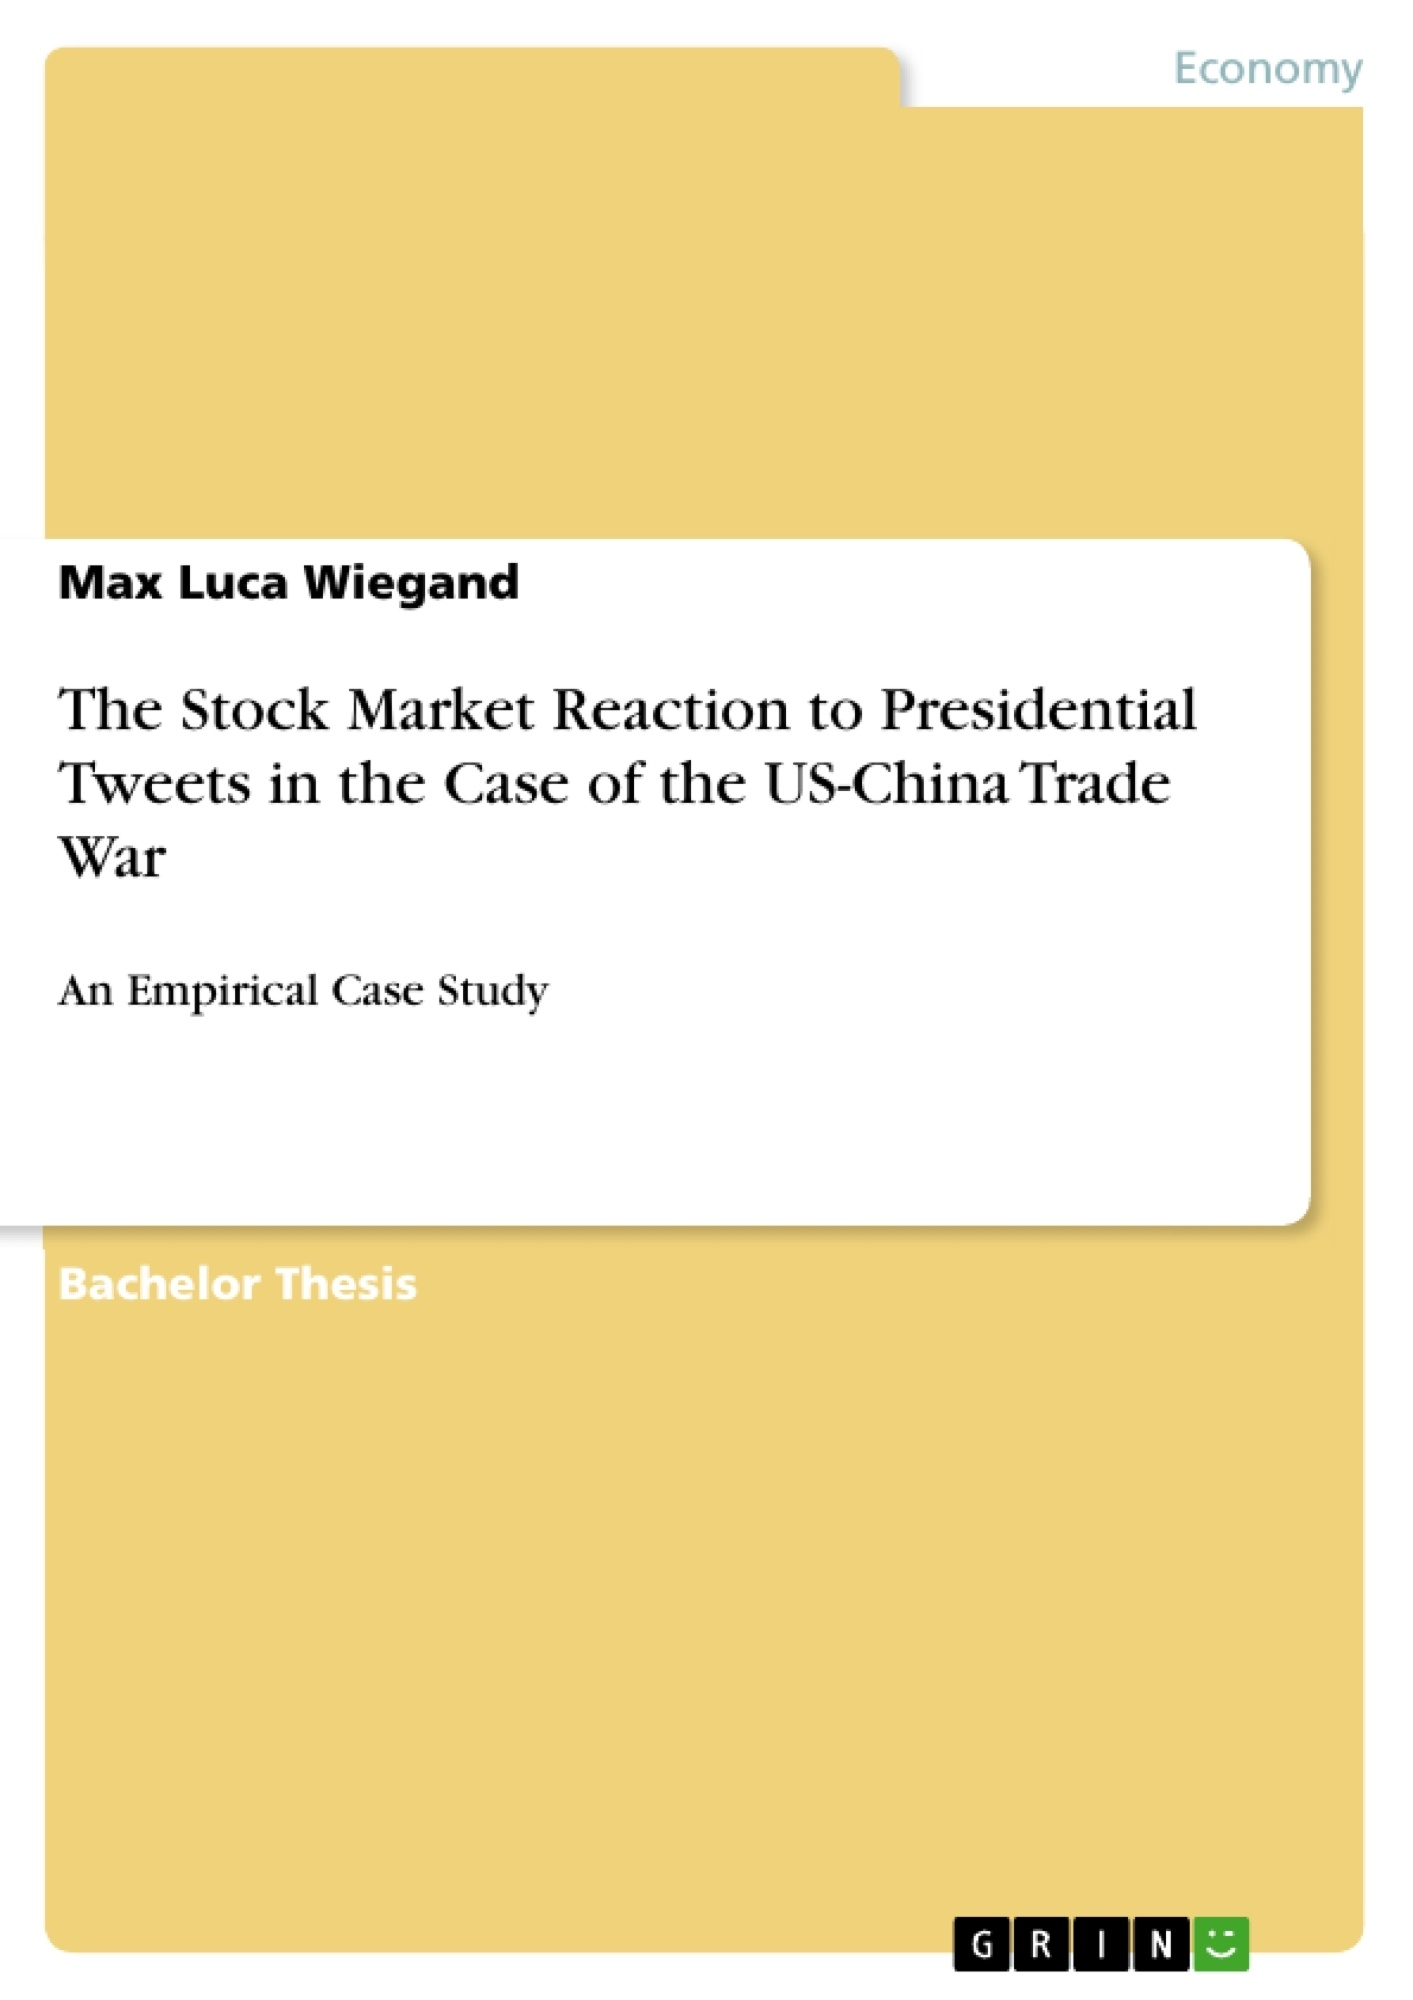 Title: The Stock Market Reaction to Presidential Tweets in the Case of the US-China Trade War